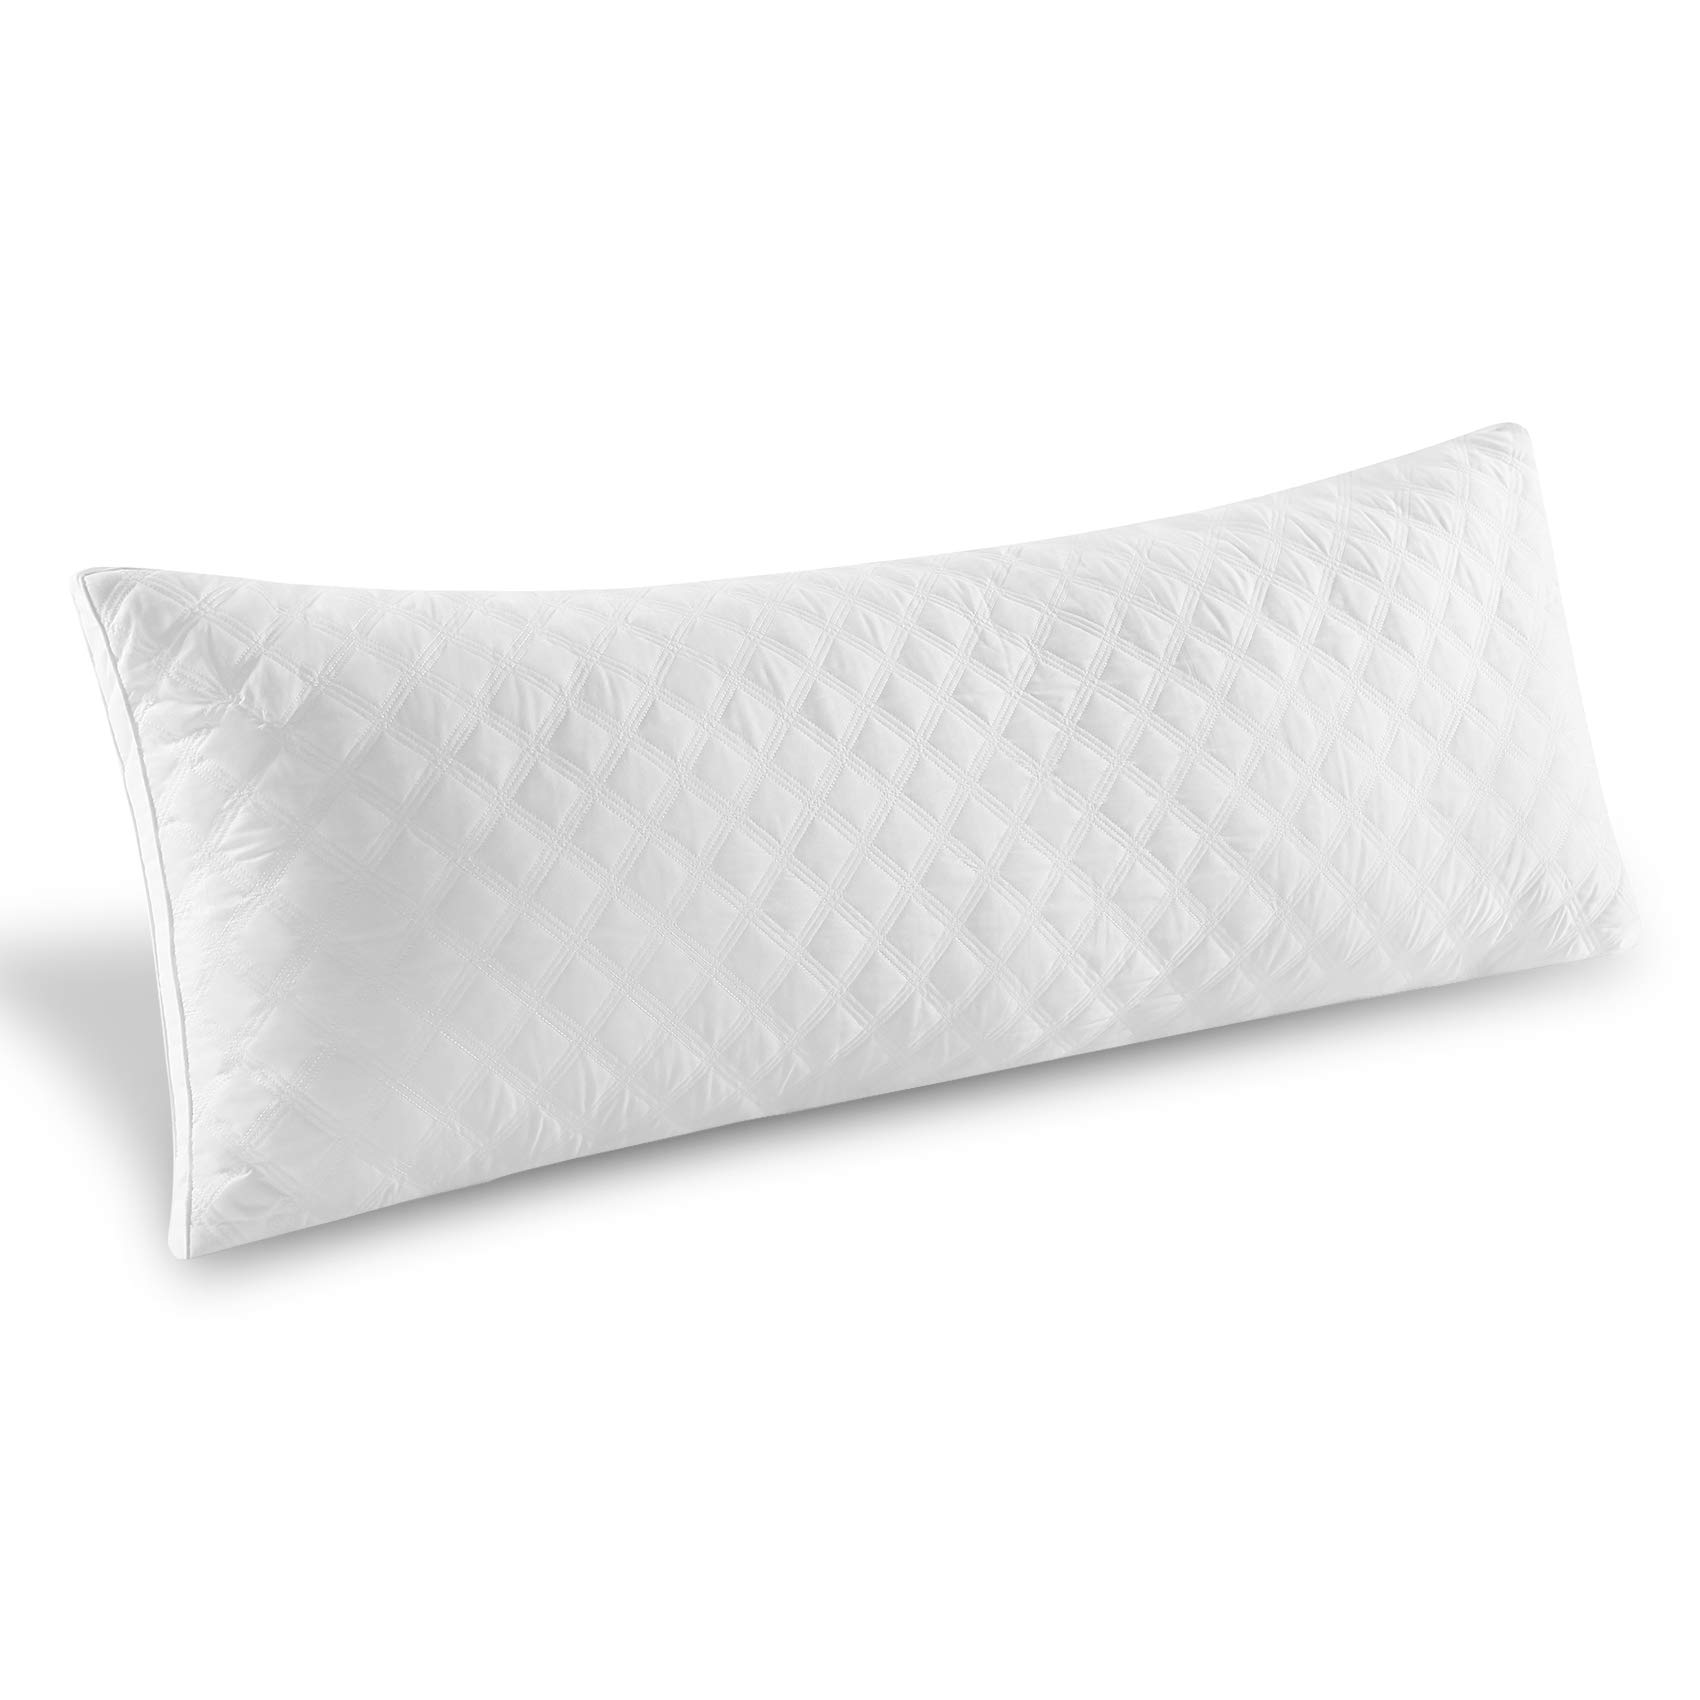 Premium Adjustable Loft Quilted Body Pillows - Hypoallergenic Fluffy Pillow - Quality Plush Pillow - Down Alternative Pillow - Head Support - Pain Relief Pillow - 21''x54''